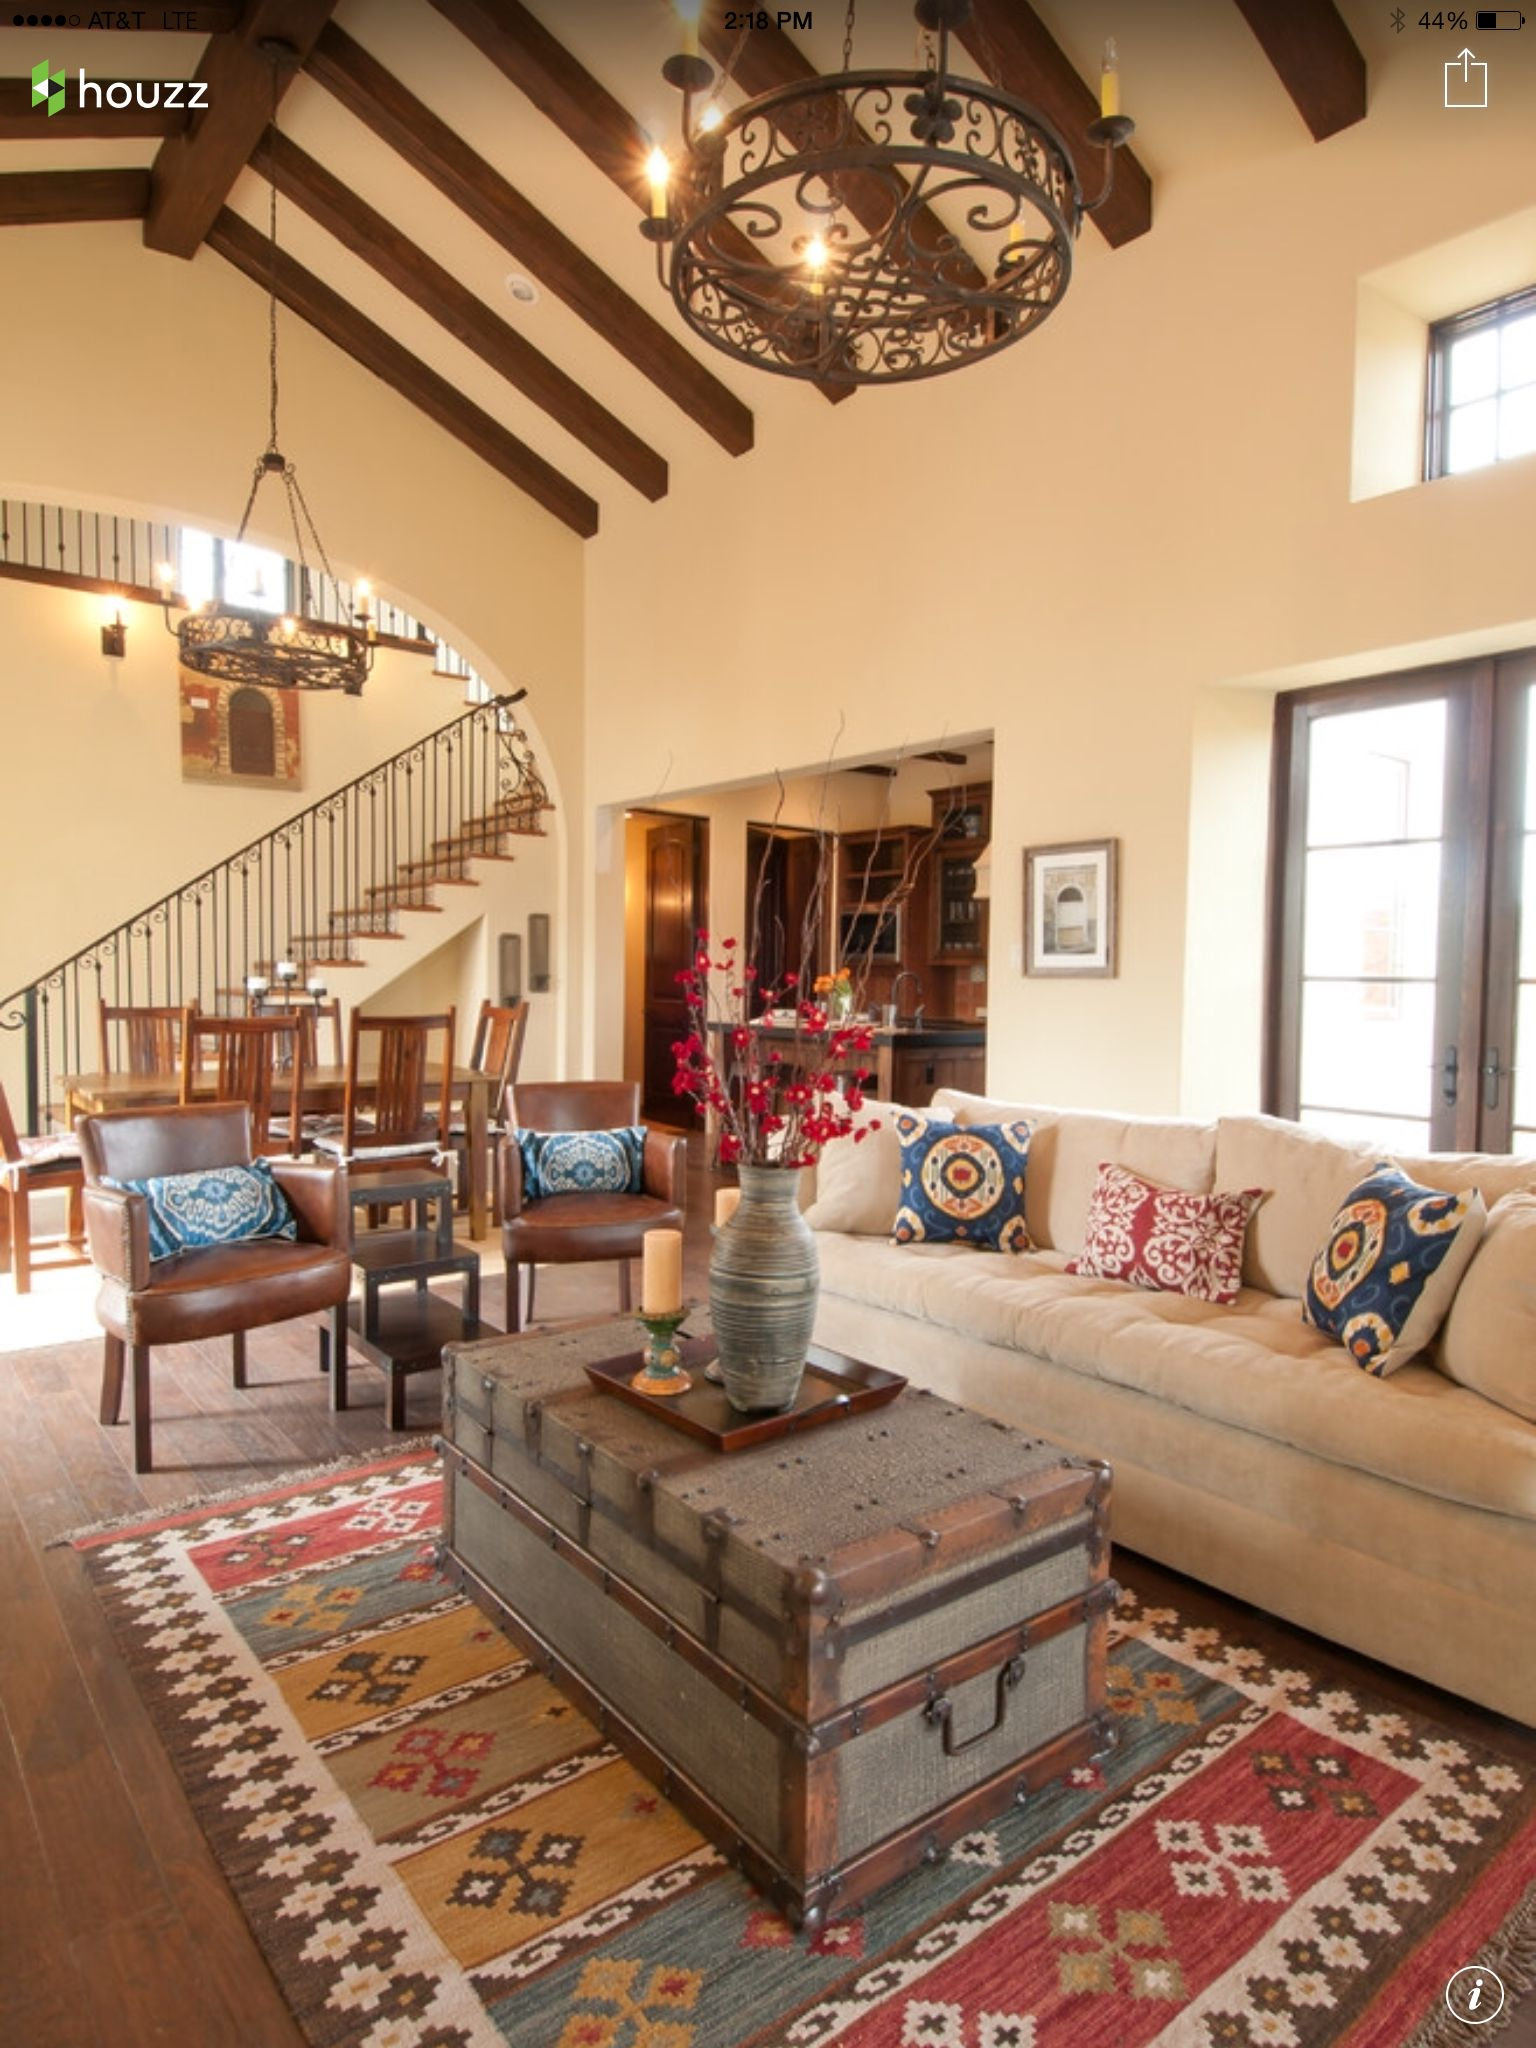 The Combo Of The Kilim Rug Pillows Rustic Chandelier Wood Beams And Old Trunk Gi Mediterranean Living Rooms Mediterranean Interior Design Family Room Design